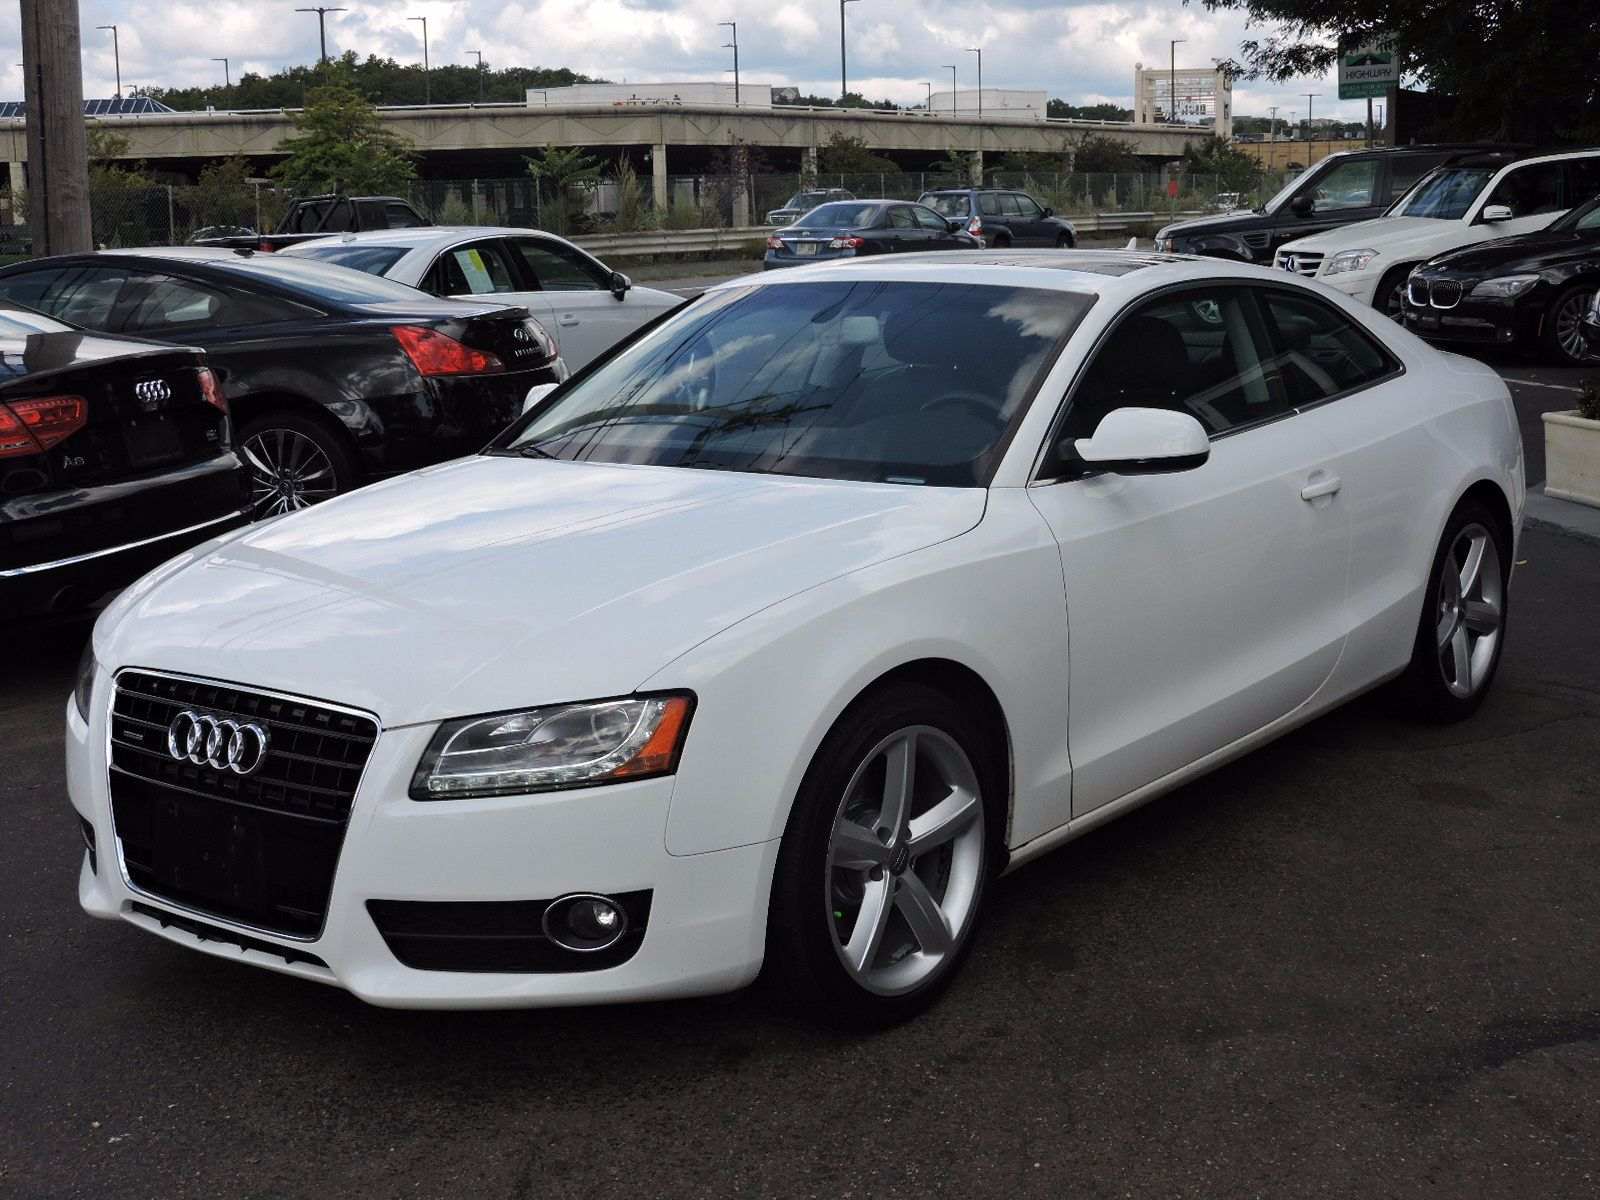 used 2010 audi a5 3 2l premium plus at saugus auto mall. Black Bedroom Furniture Sets. Home Design Ideas